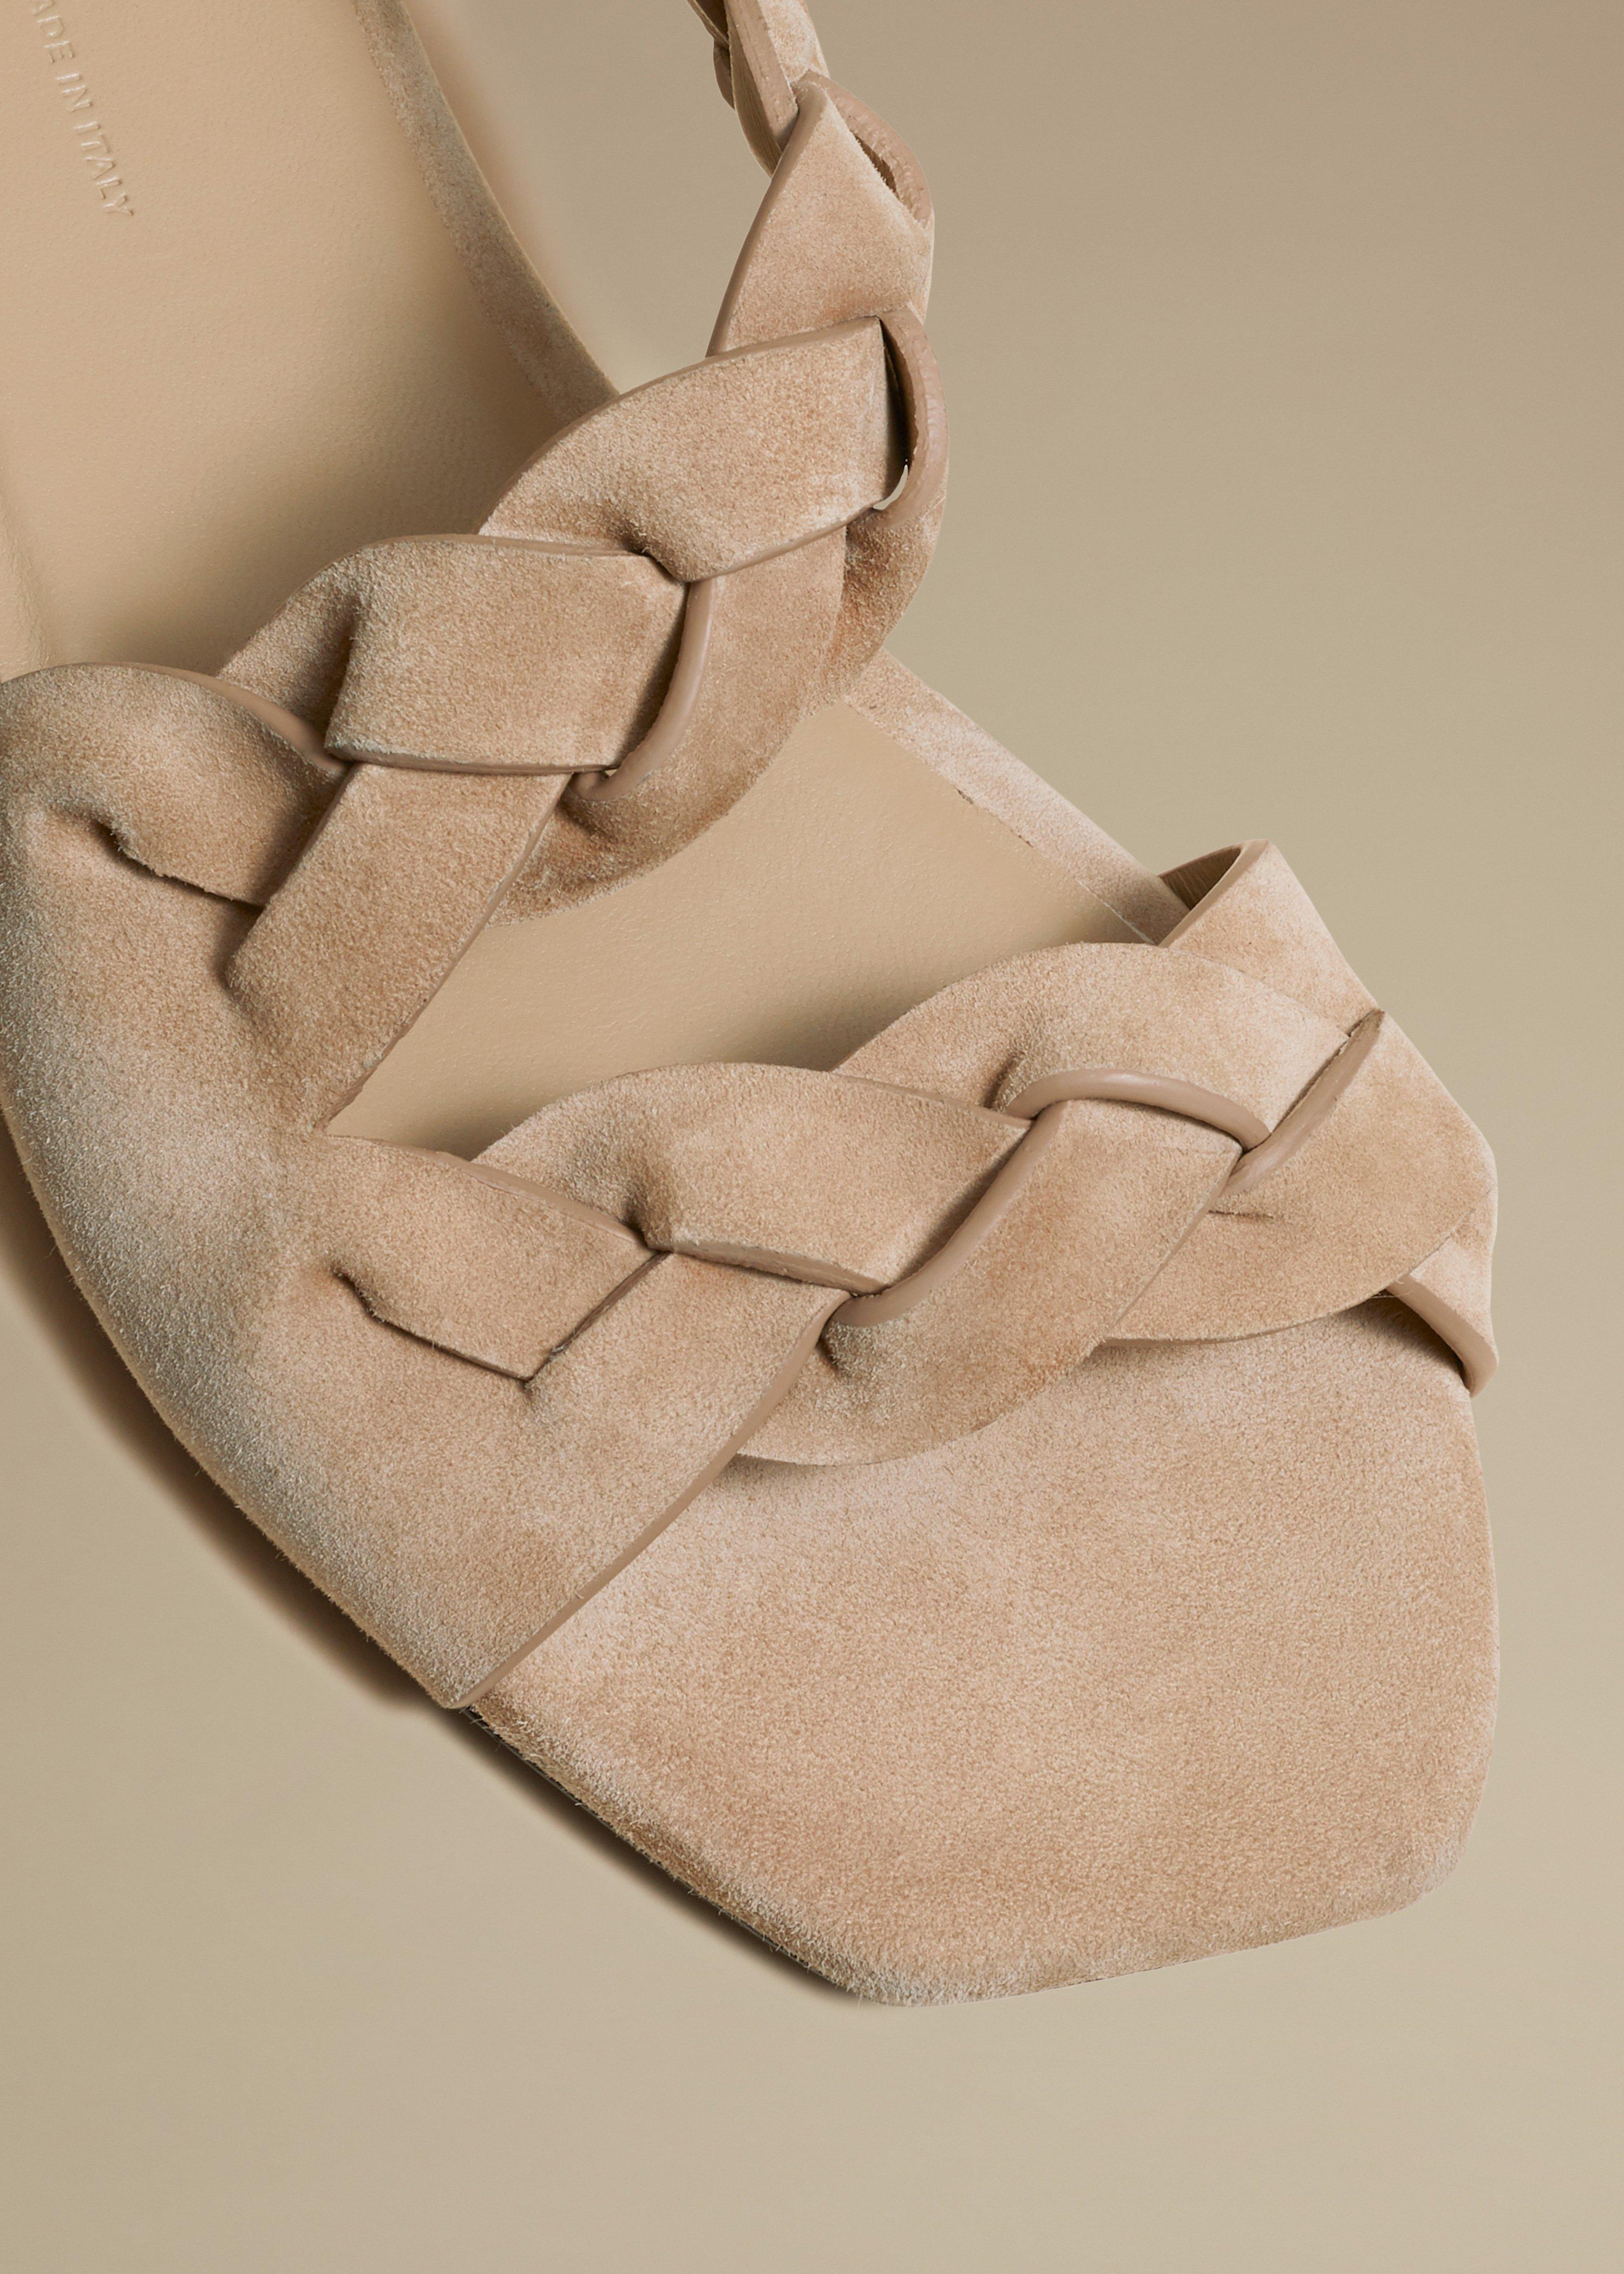 The Torrance Sandal in Biscuit Suede 2